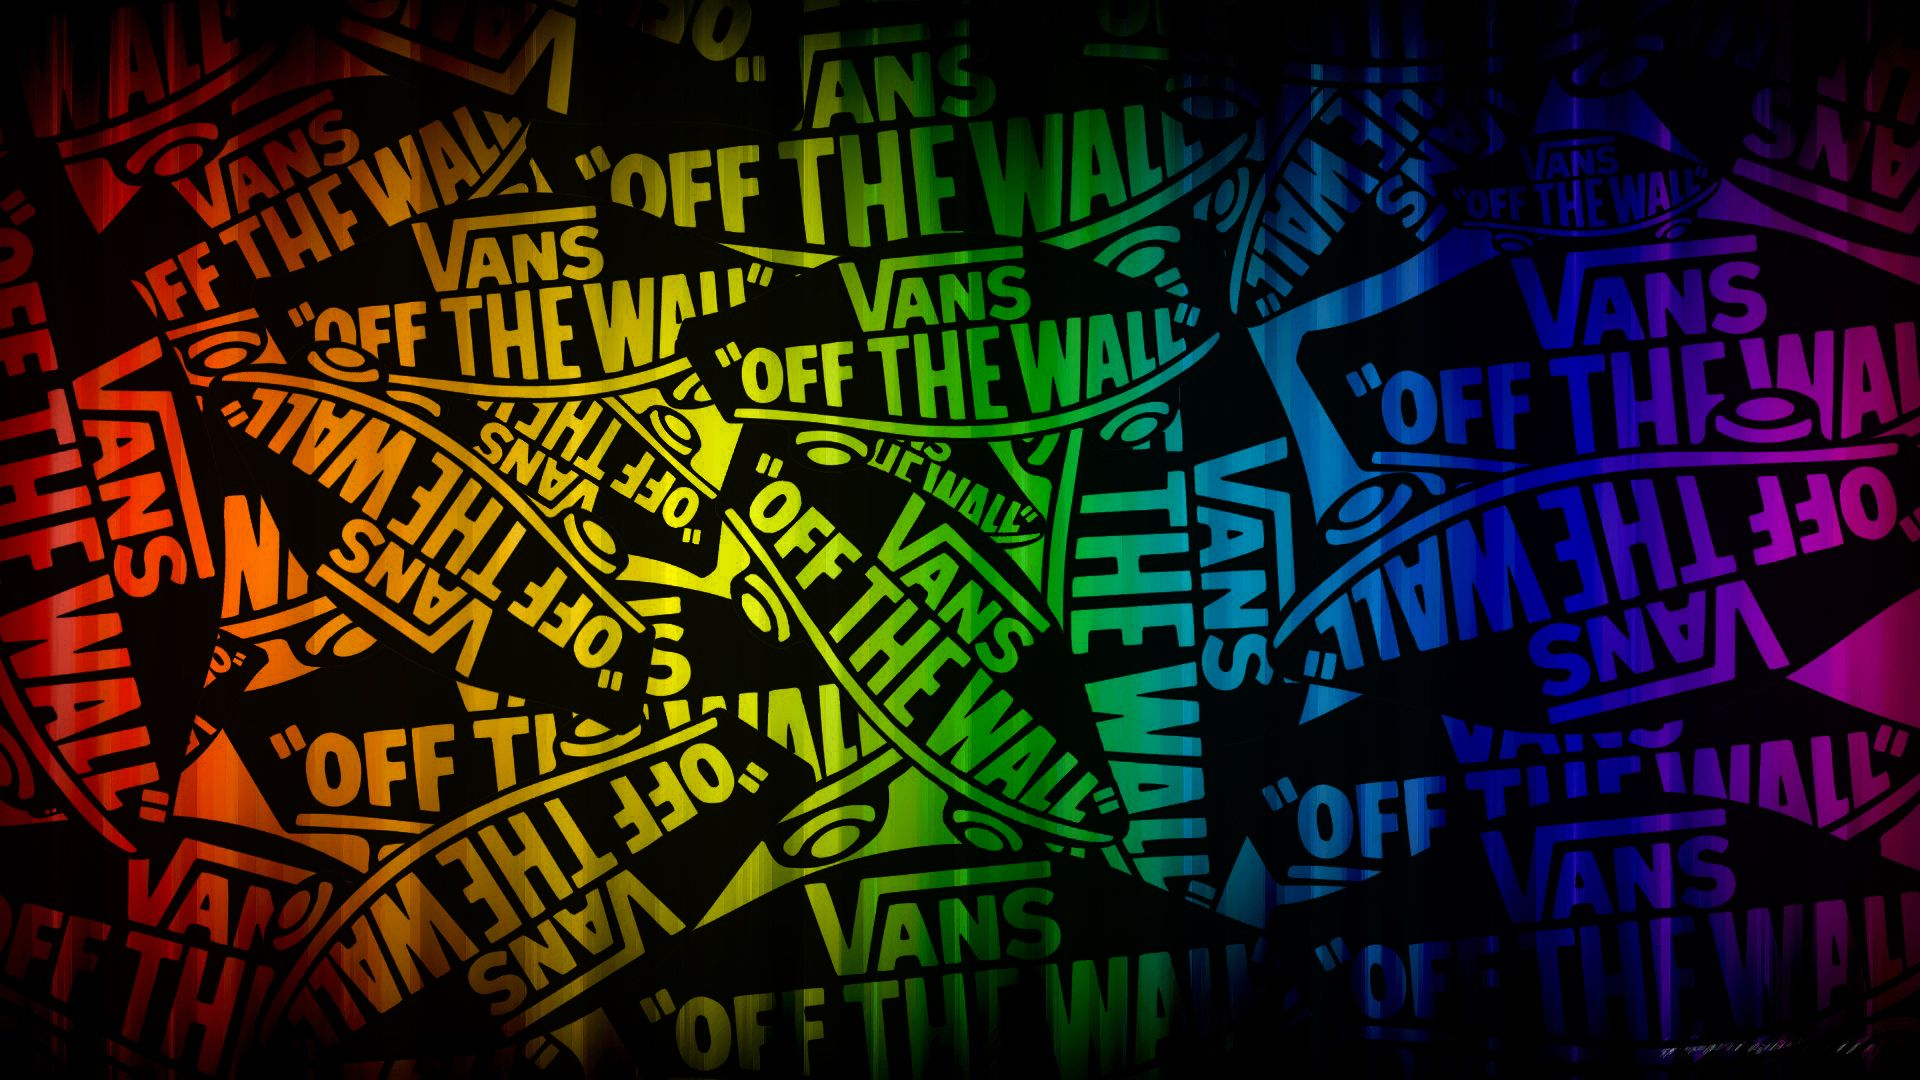 Vans Off the Wall Vans off the wall, Logo wallpaper hd